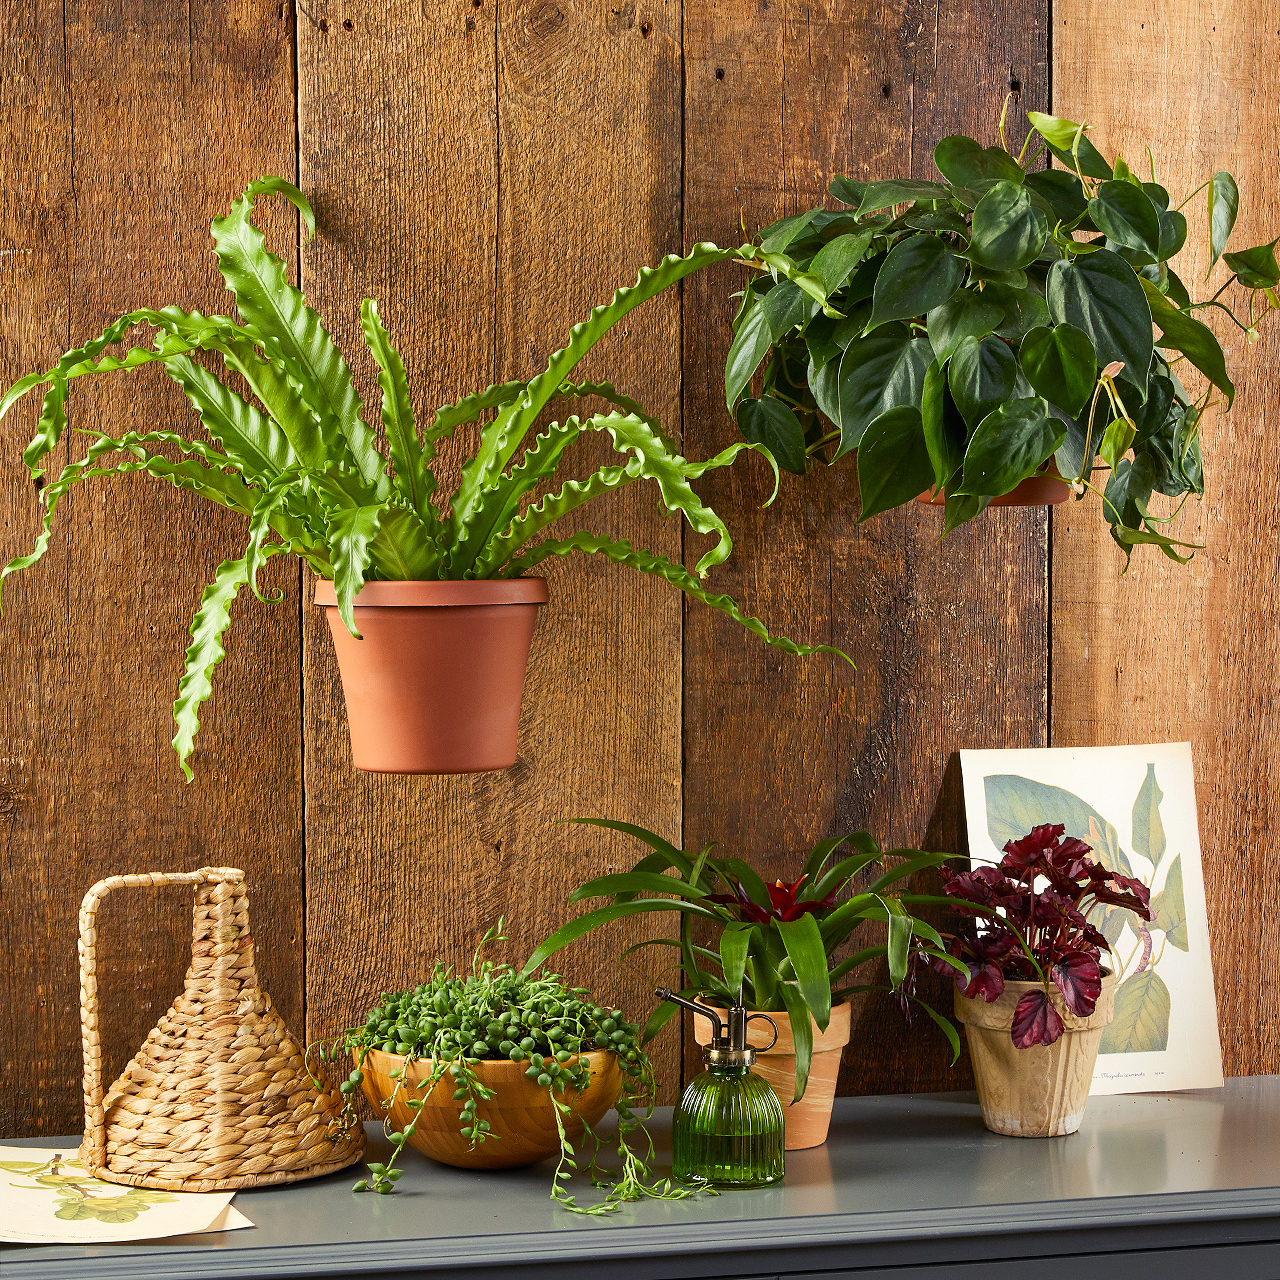 wood plank wall with hanging plants